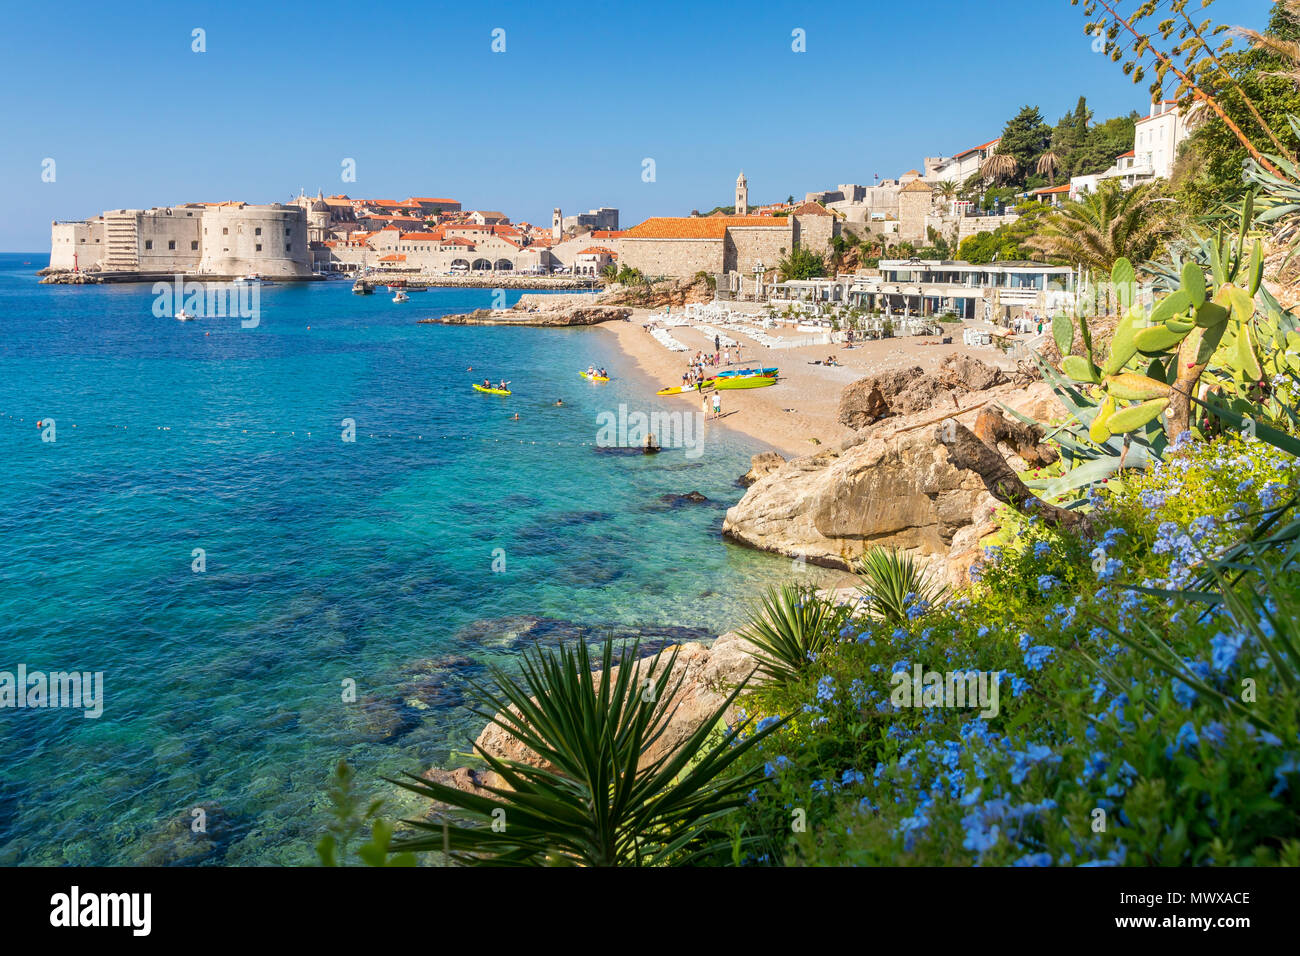 View over Banje Beach and the old town of Dubrovnik in the background, Croatia, Europe - Stock Image